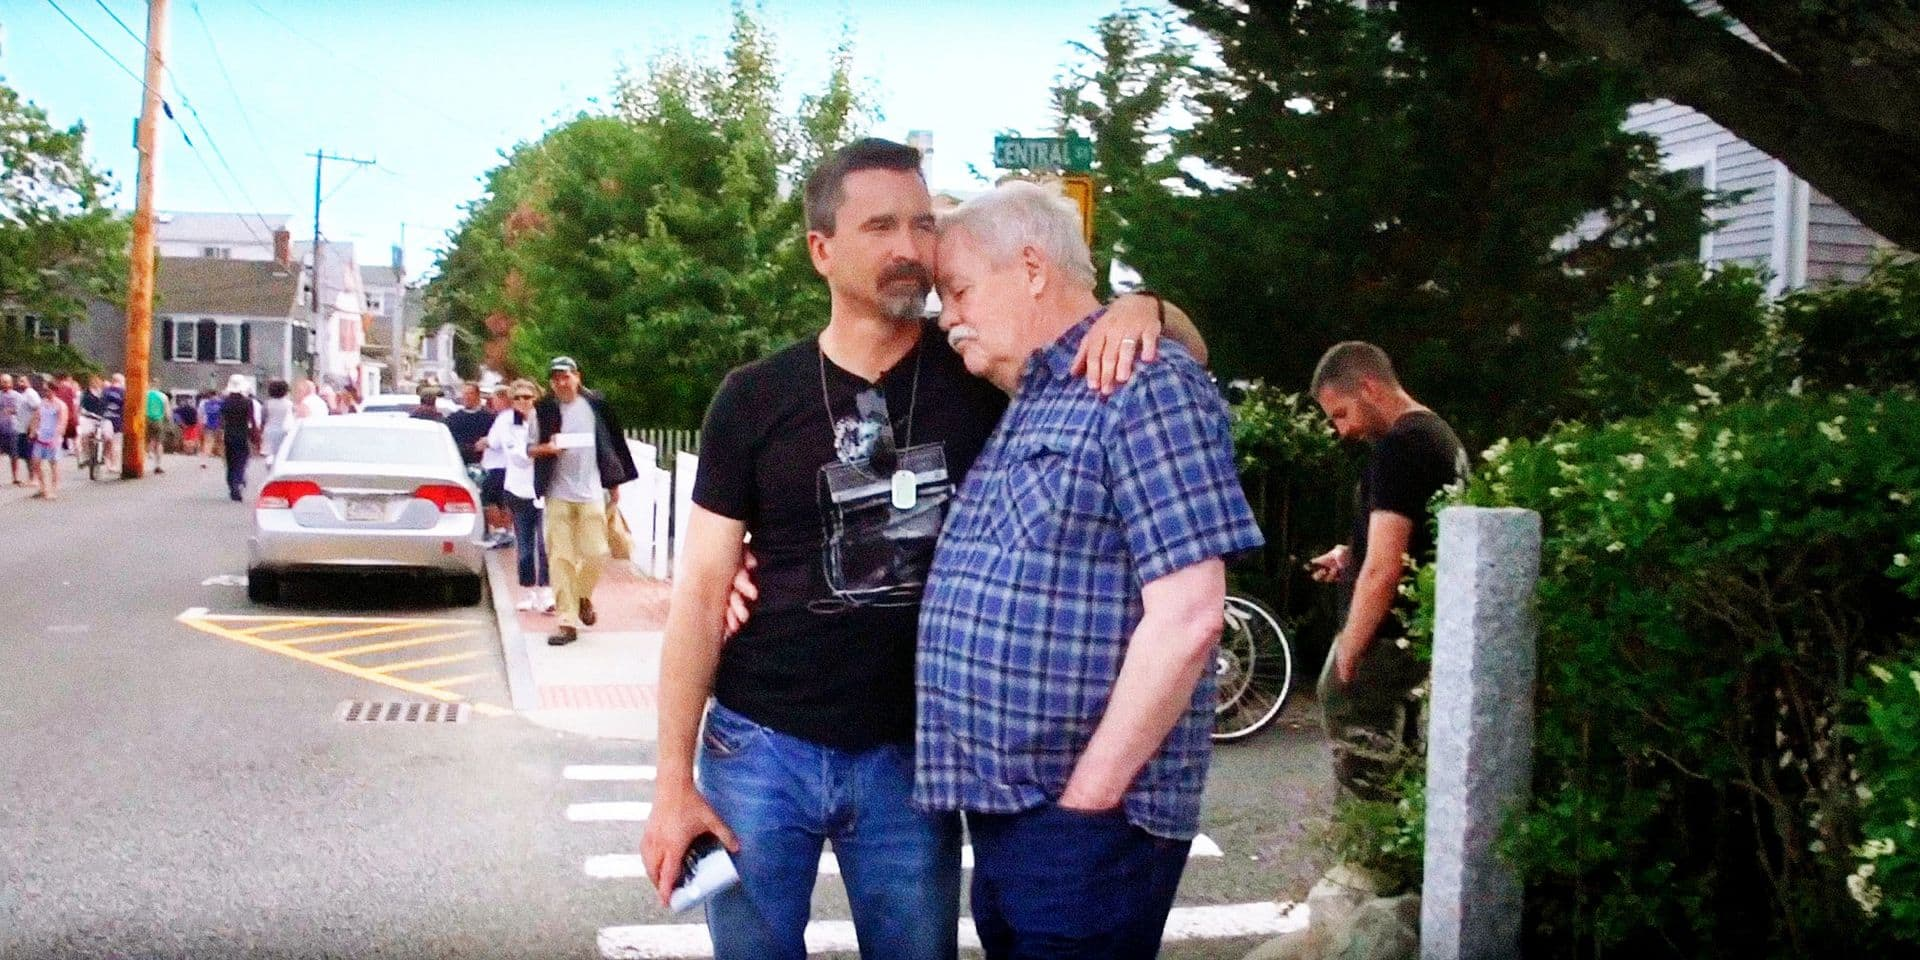 THE UNTOLD TALES OF ARMISTEAD MAUPIN, Armistead Maupin, right, and his husband, Christopher Turner , 2017. ©The Film Collaborative/courtesy Everett Collection Reporters / Everett